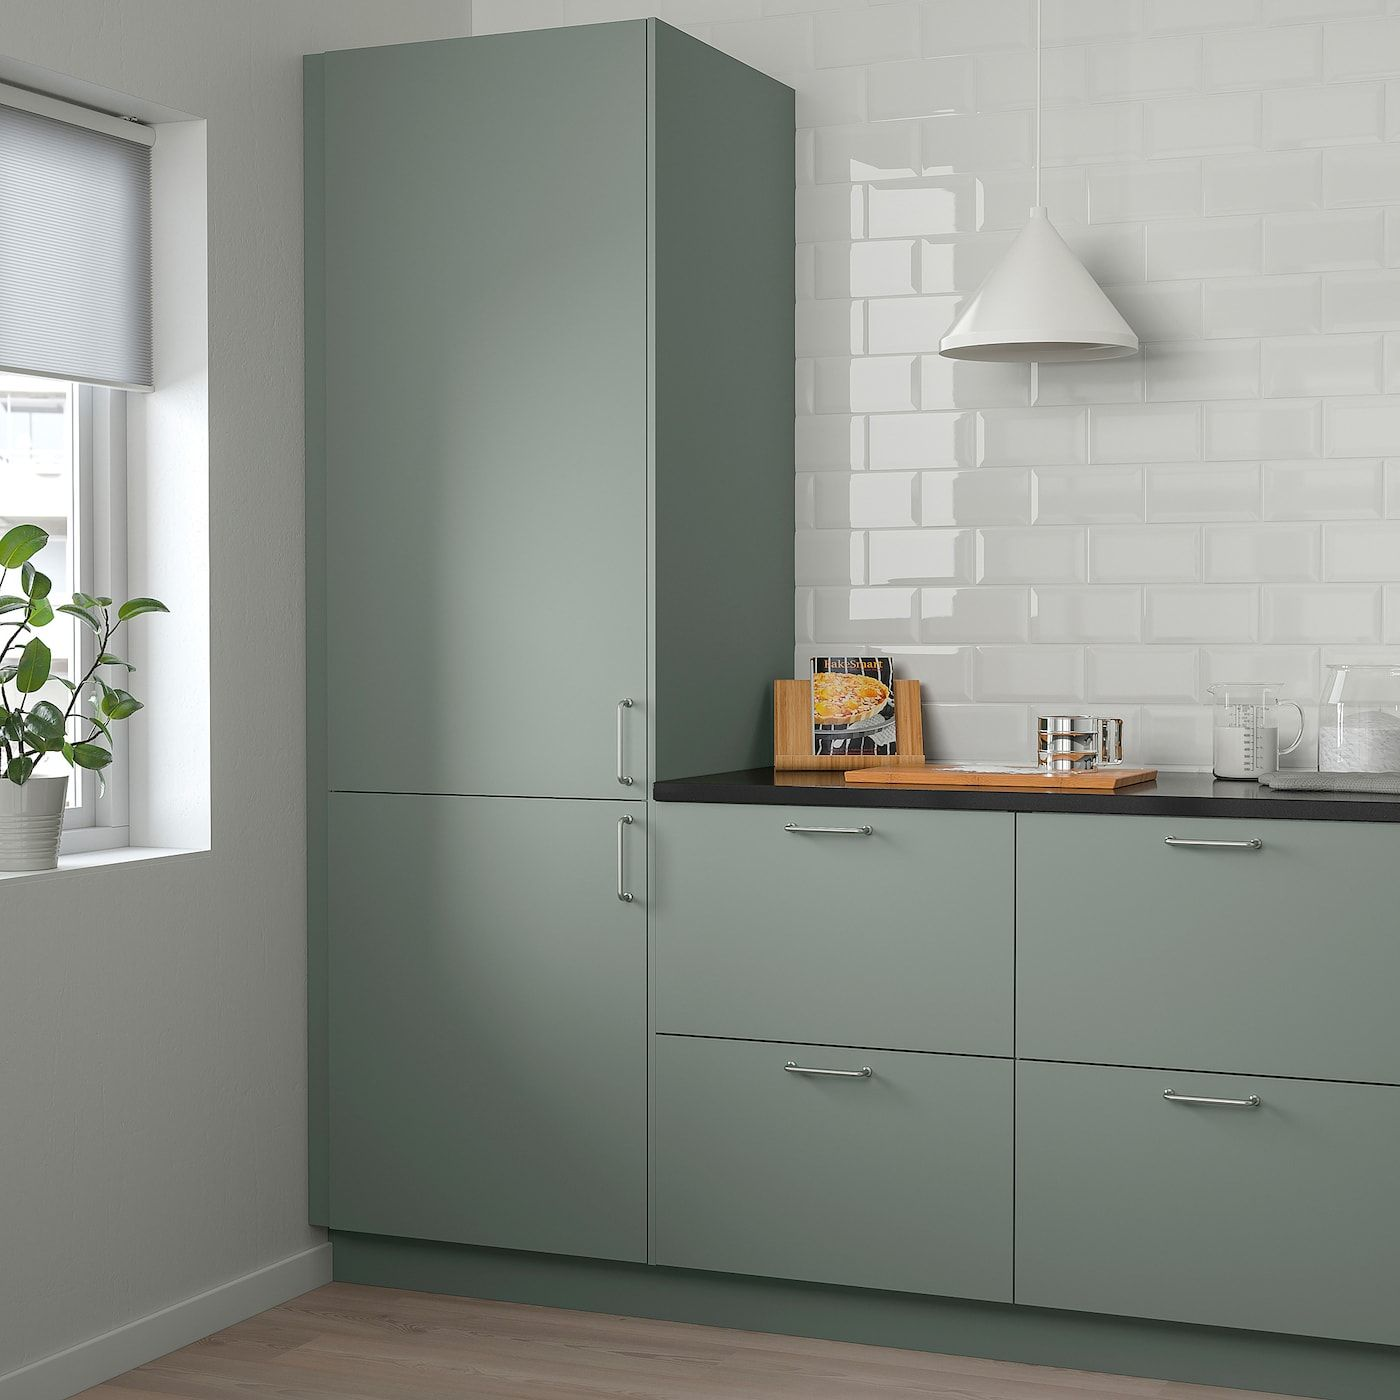 Bodarp Door Gray Green 15x15 Green Cabinets Green And Grey